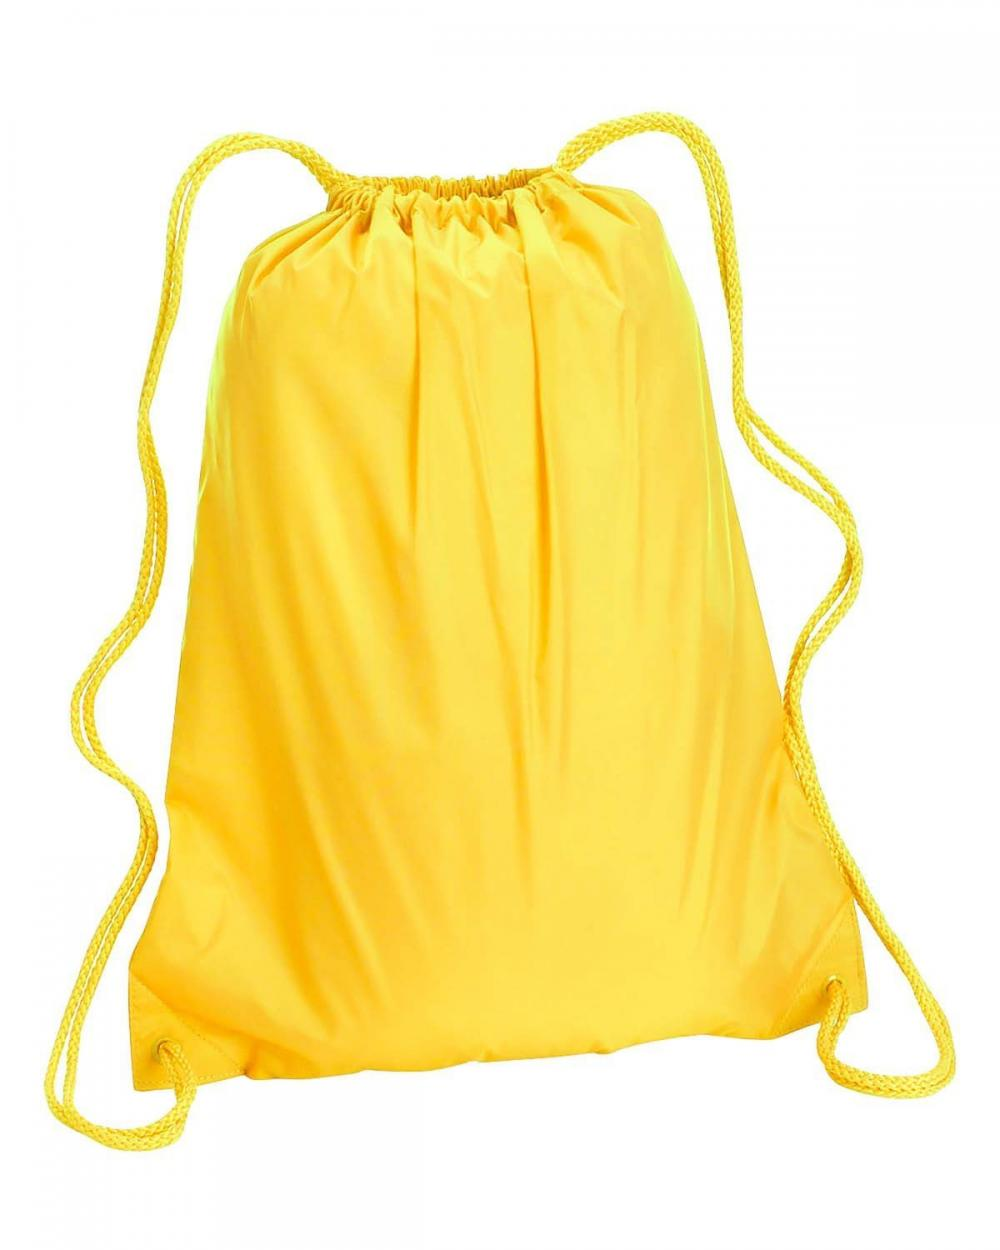 Nylon Drawstring Travel Pouch